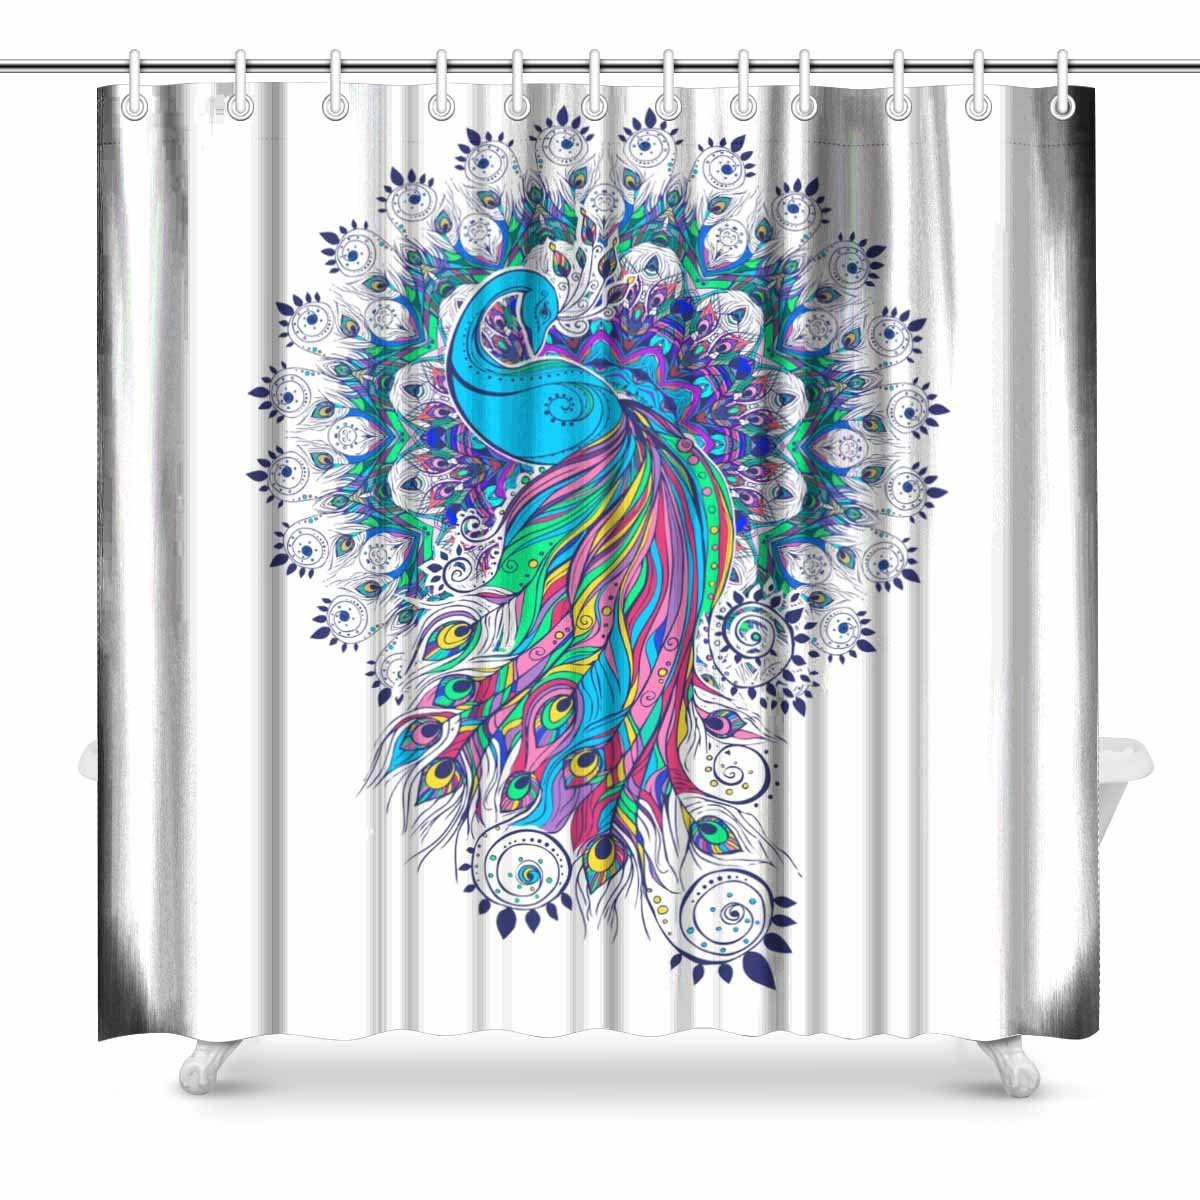 Us 17 24 31 Off Colourful Peacocks Print Polyester Fabric Shower Curtain 72 X 72 Inches Extra Long In Shower Curtains From Home Garden On